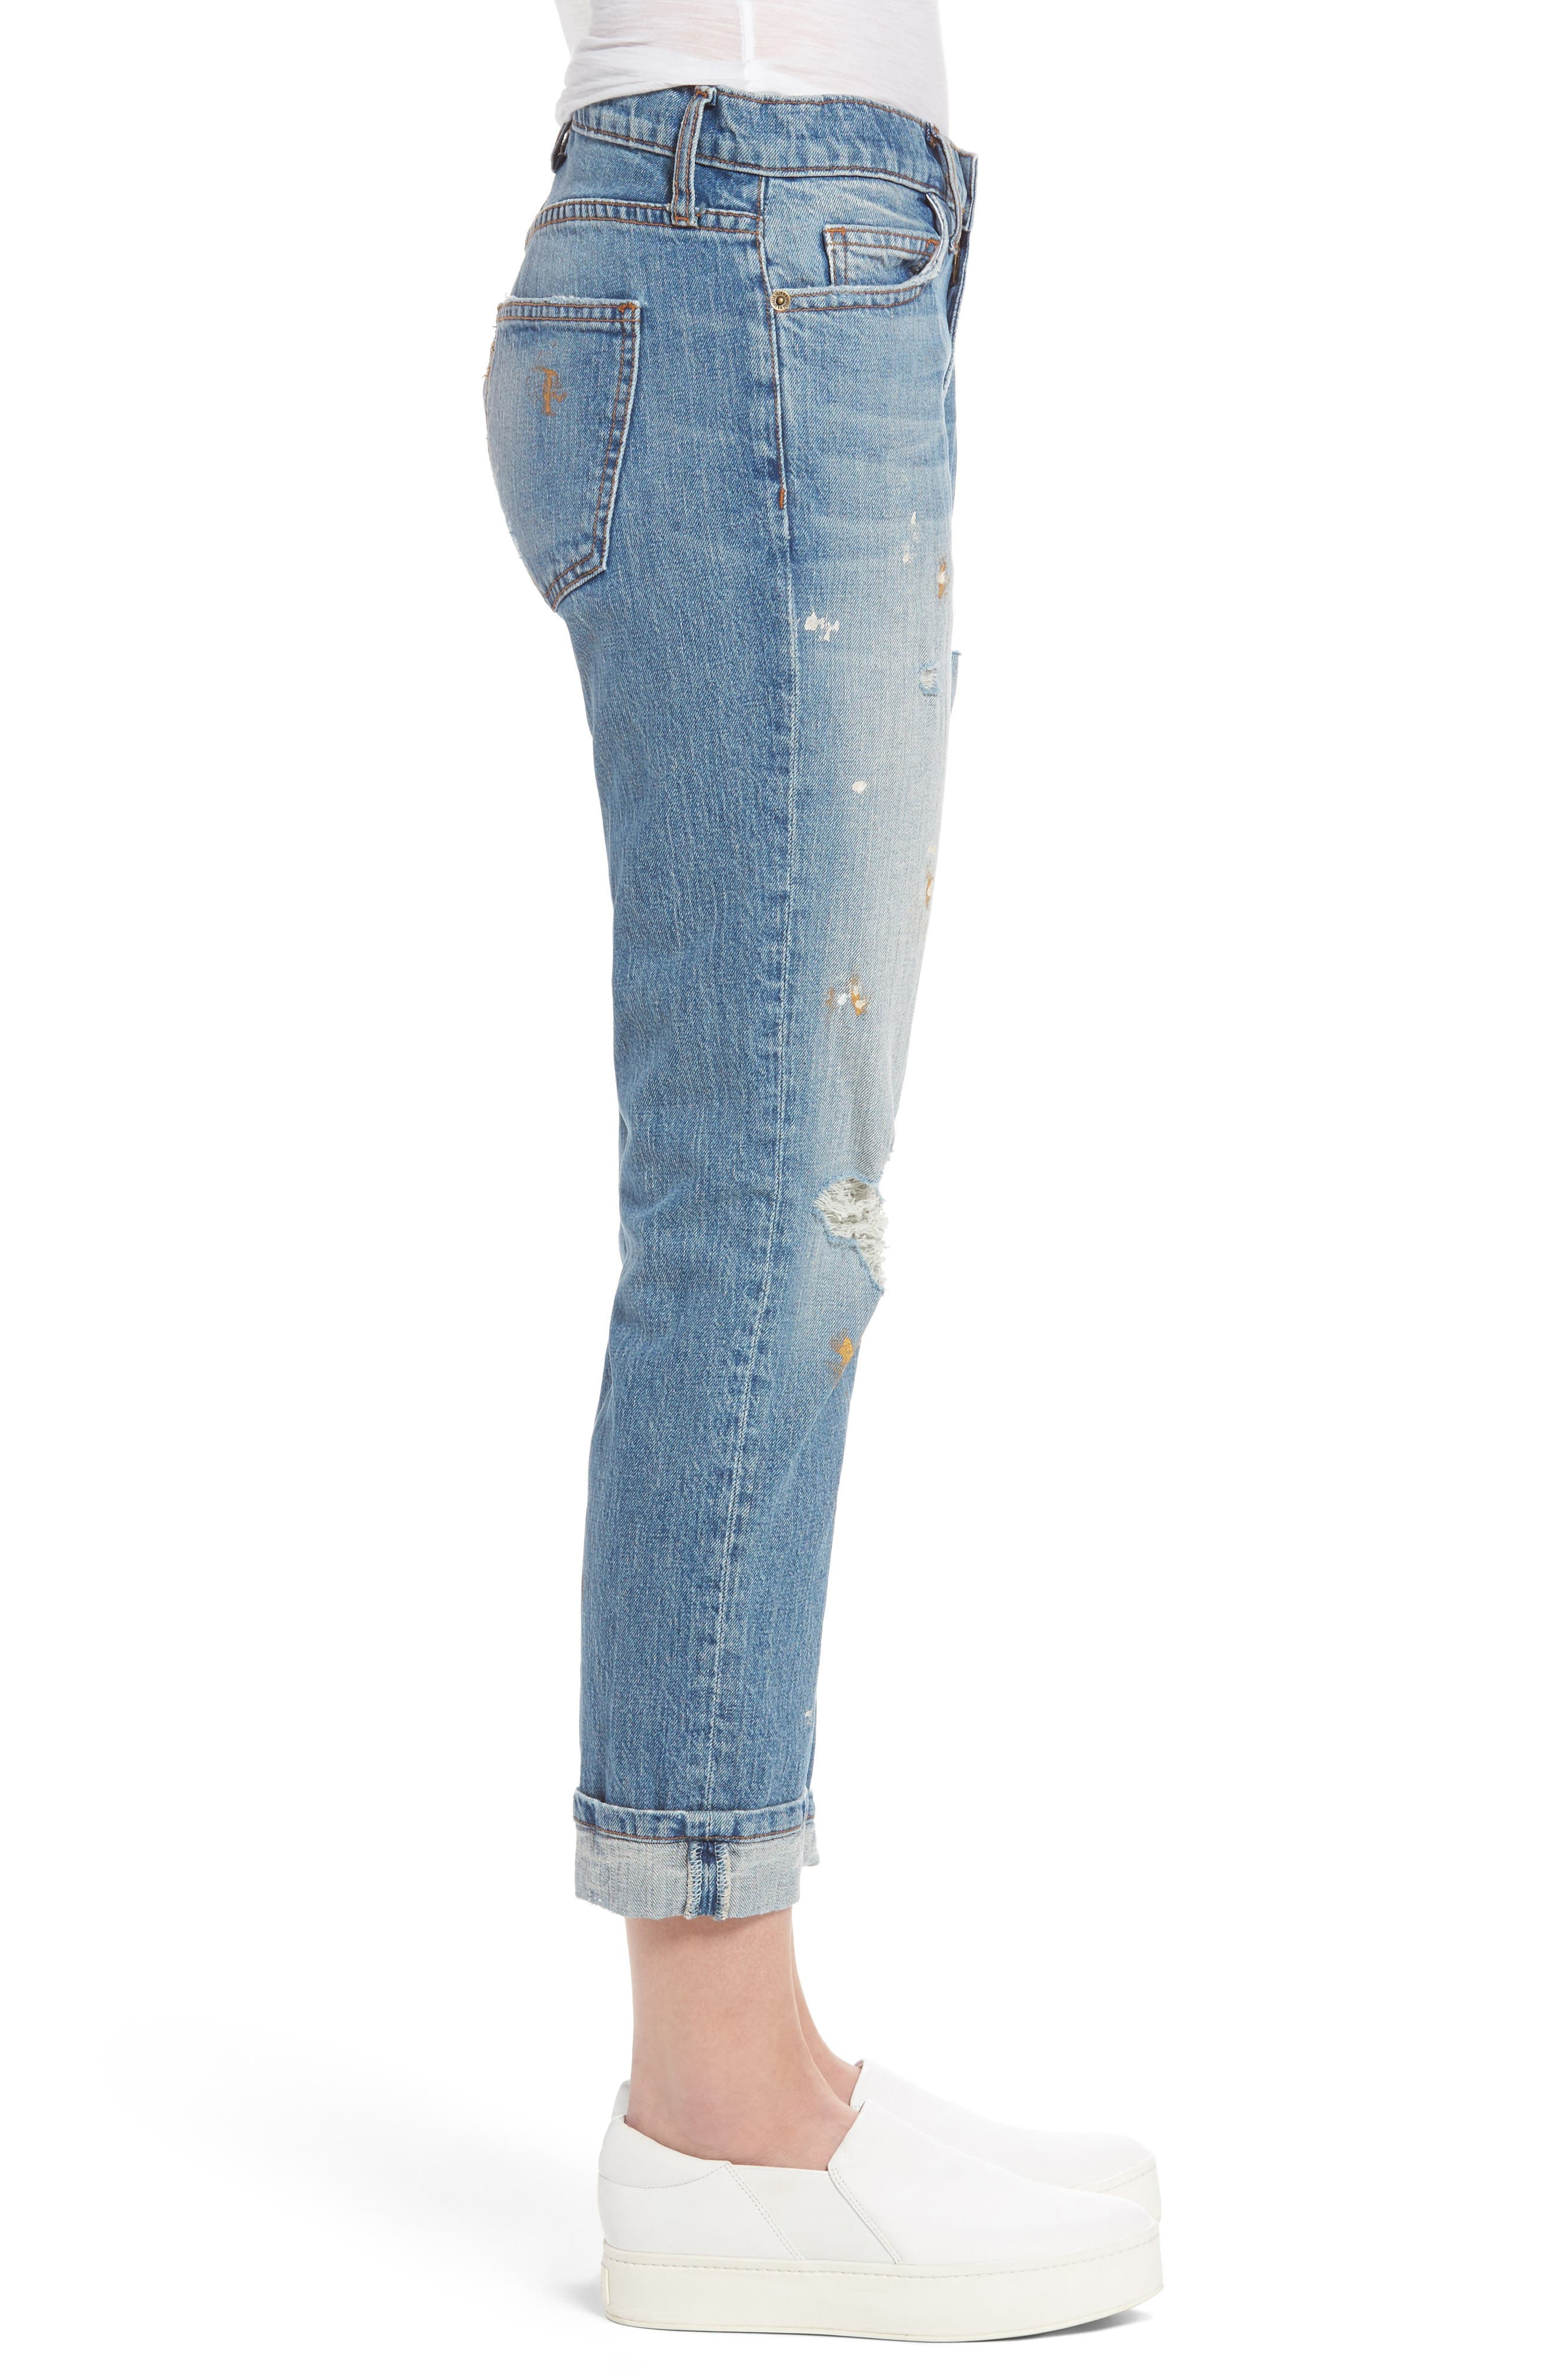 Fling Distressed Rolled Jeans,                             Alternate thumbnail 3, color,                             Bolero